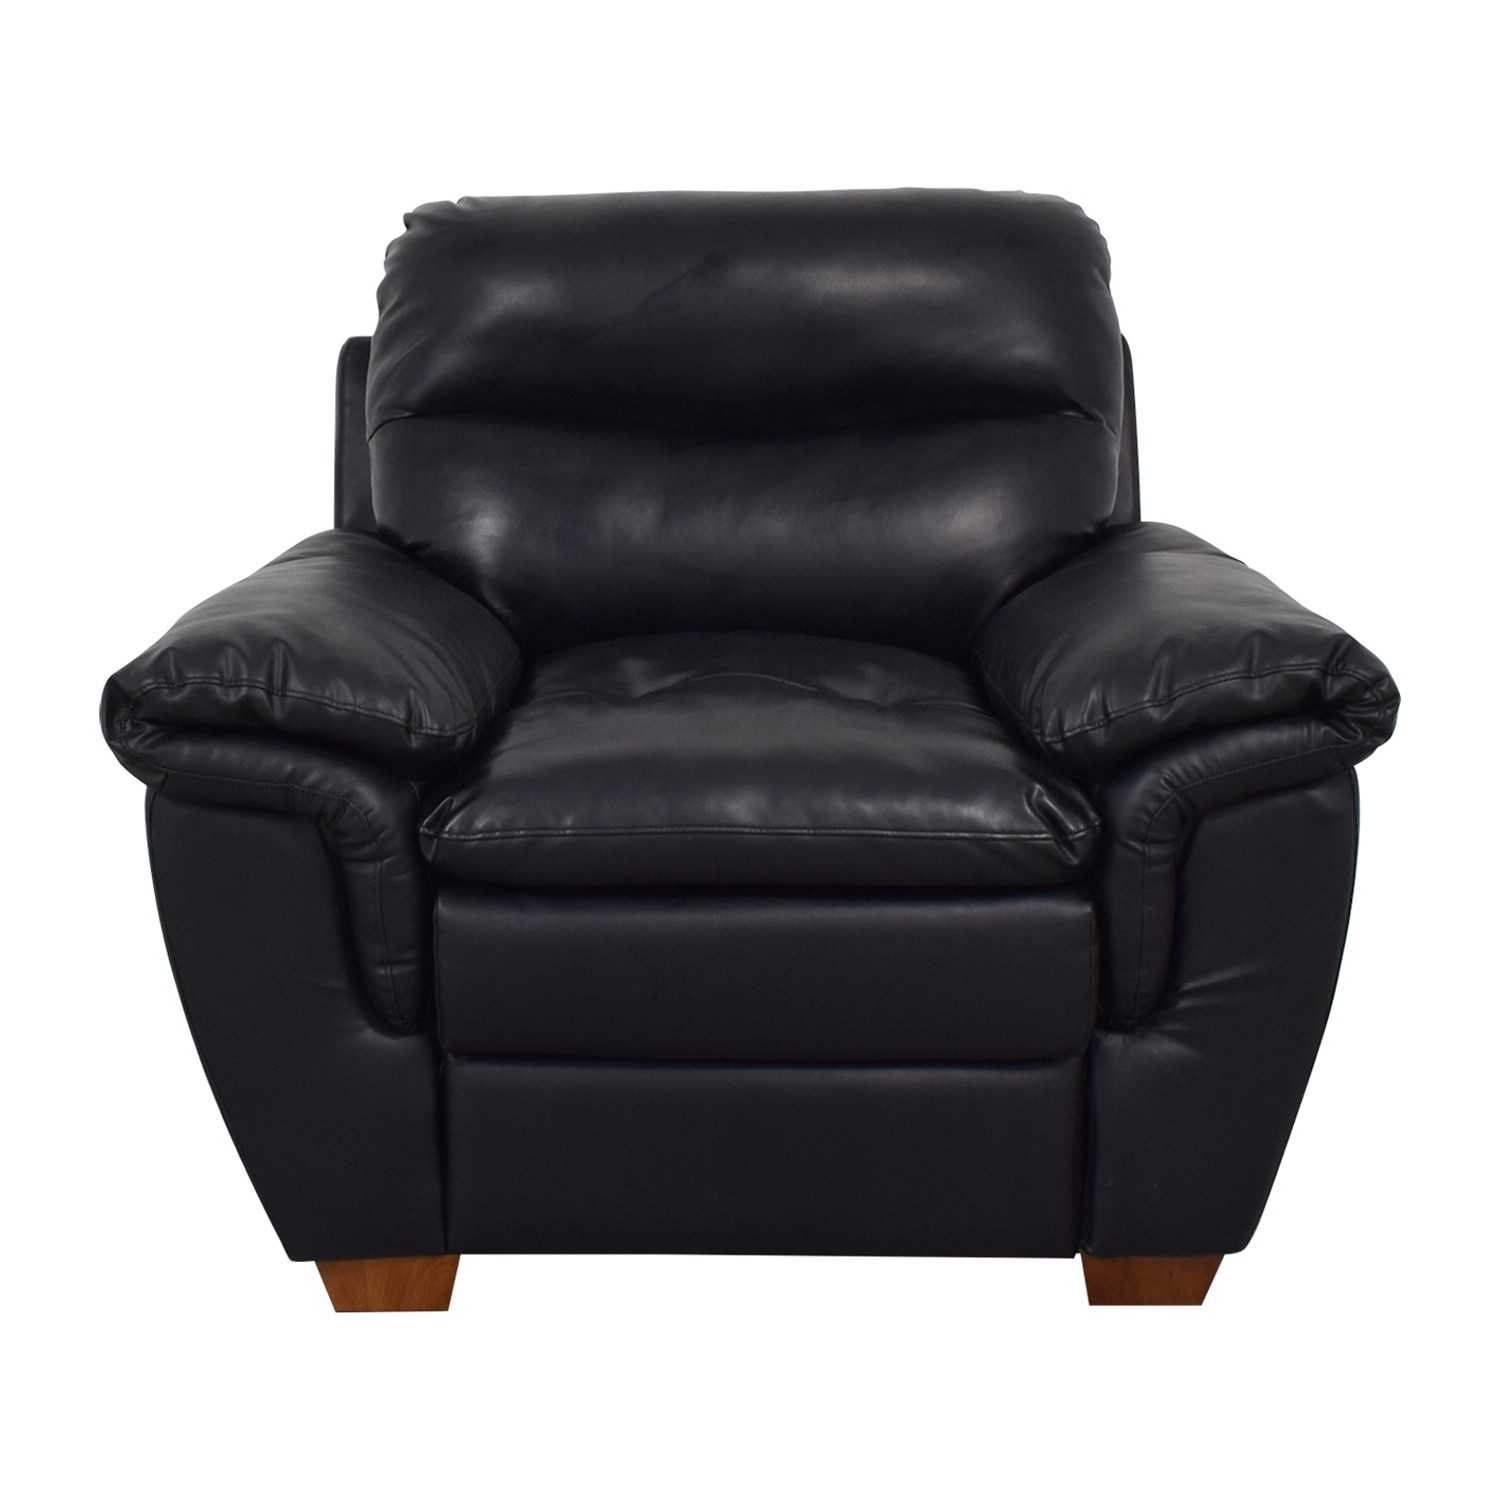 shop Jennifer Furniture Wilton Black Accent Chair Jennifer Furniture Chairs